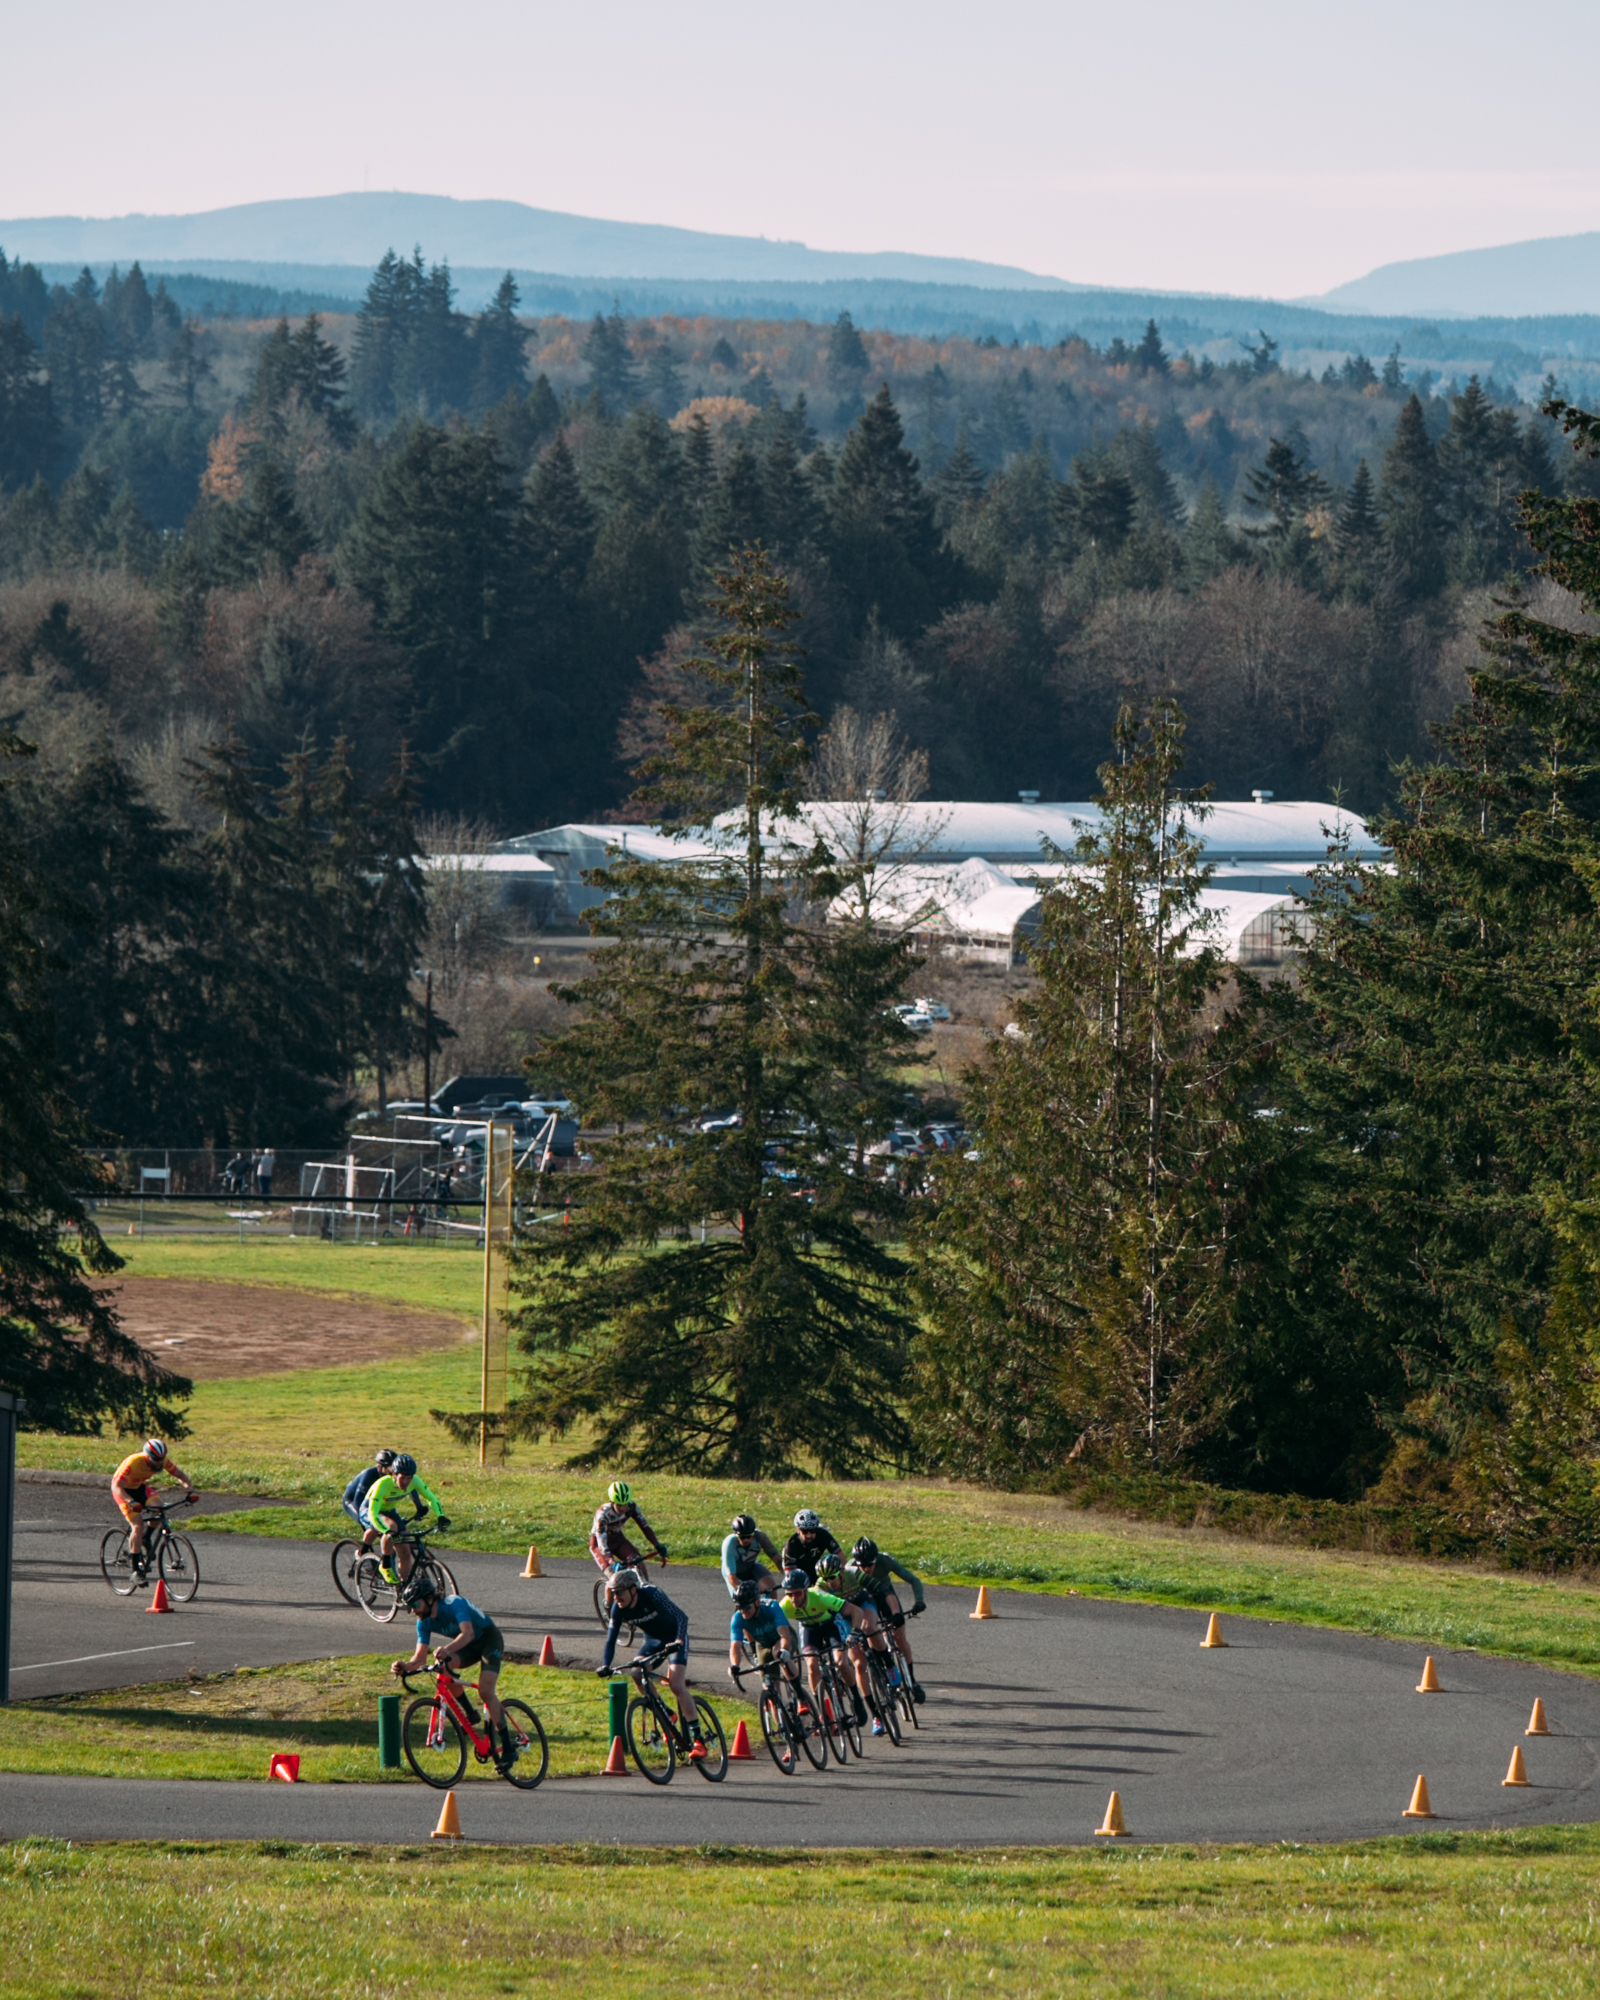 Cyclocross18_CCCX_RainierHS-34-mettlecycling.jpg